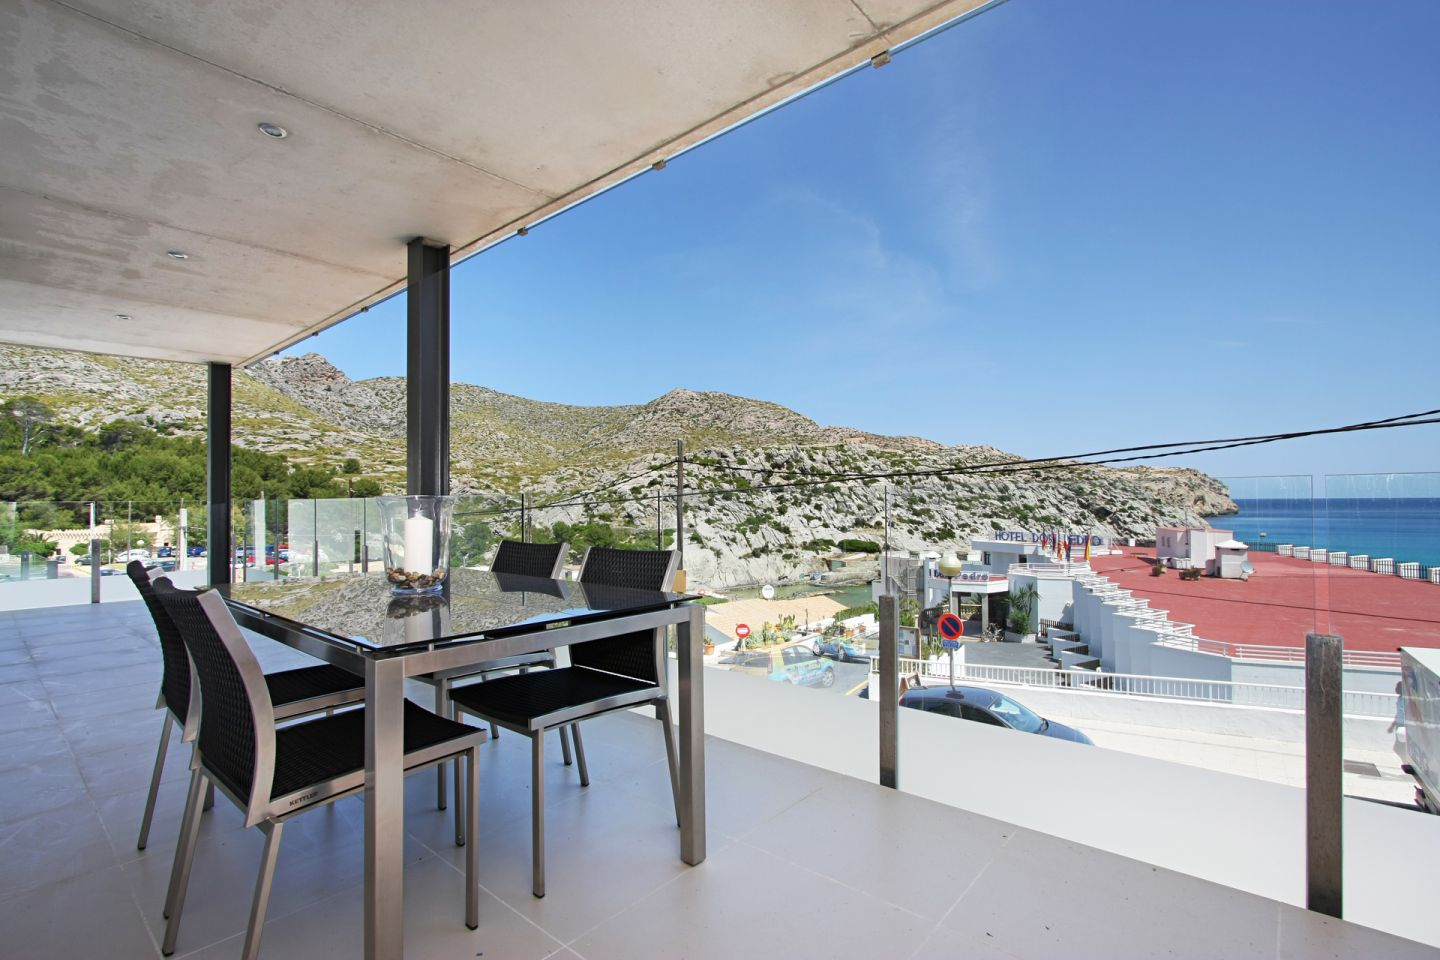 2 Bed Apartment for sale in Cala San Vicente 7